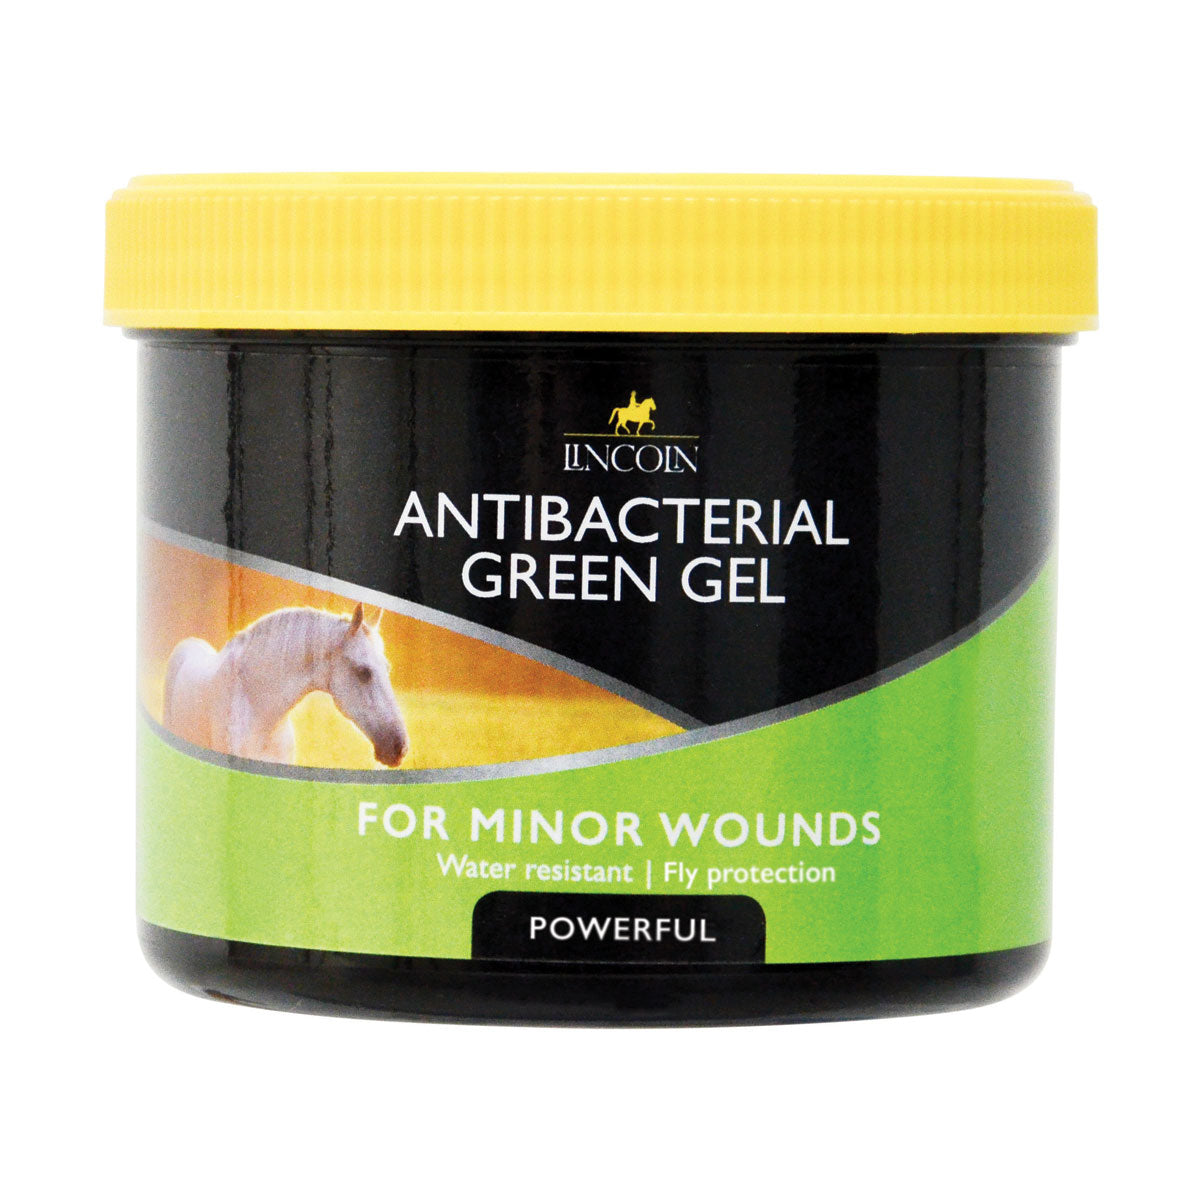 Lincoln Antibacterial Green Gel